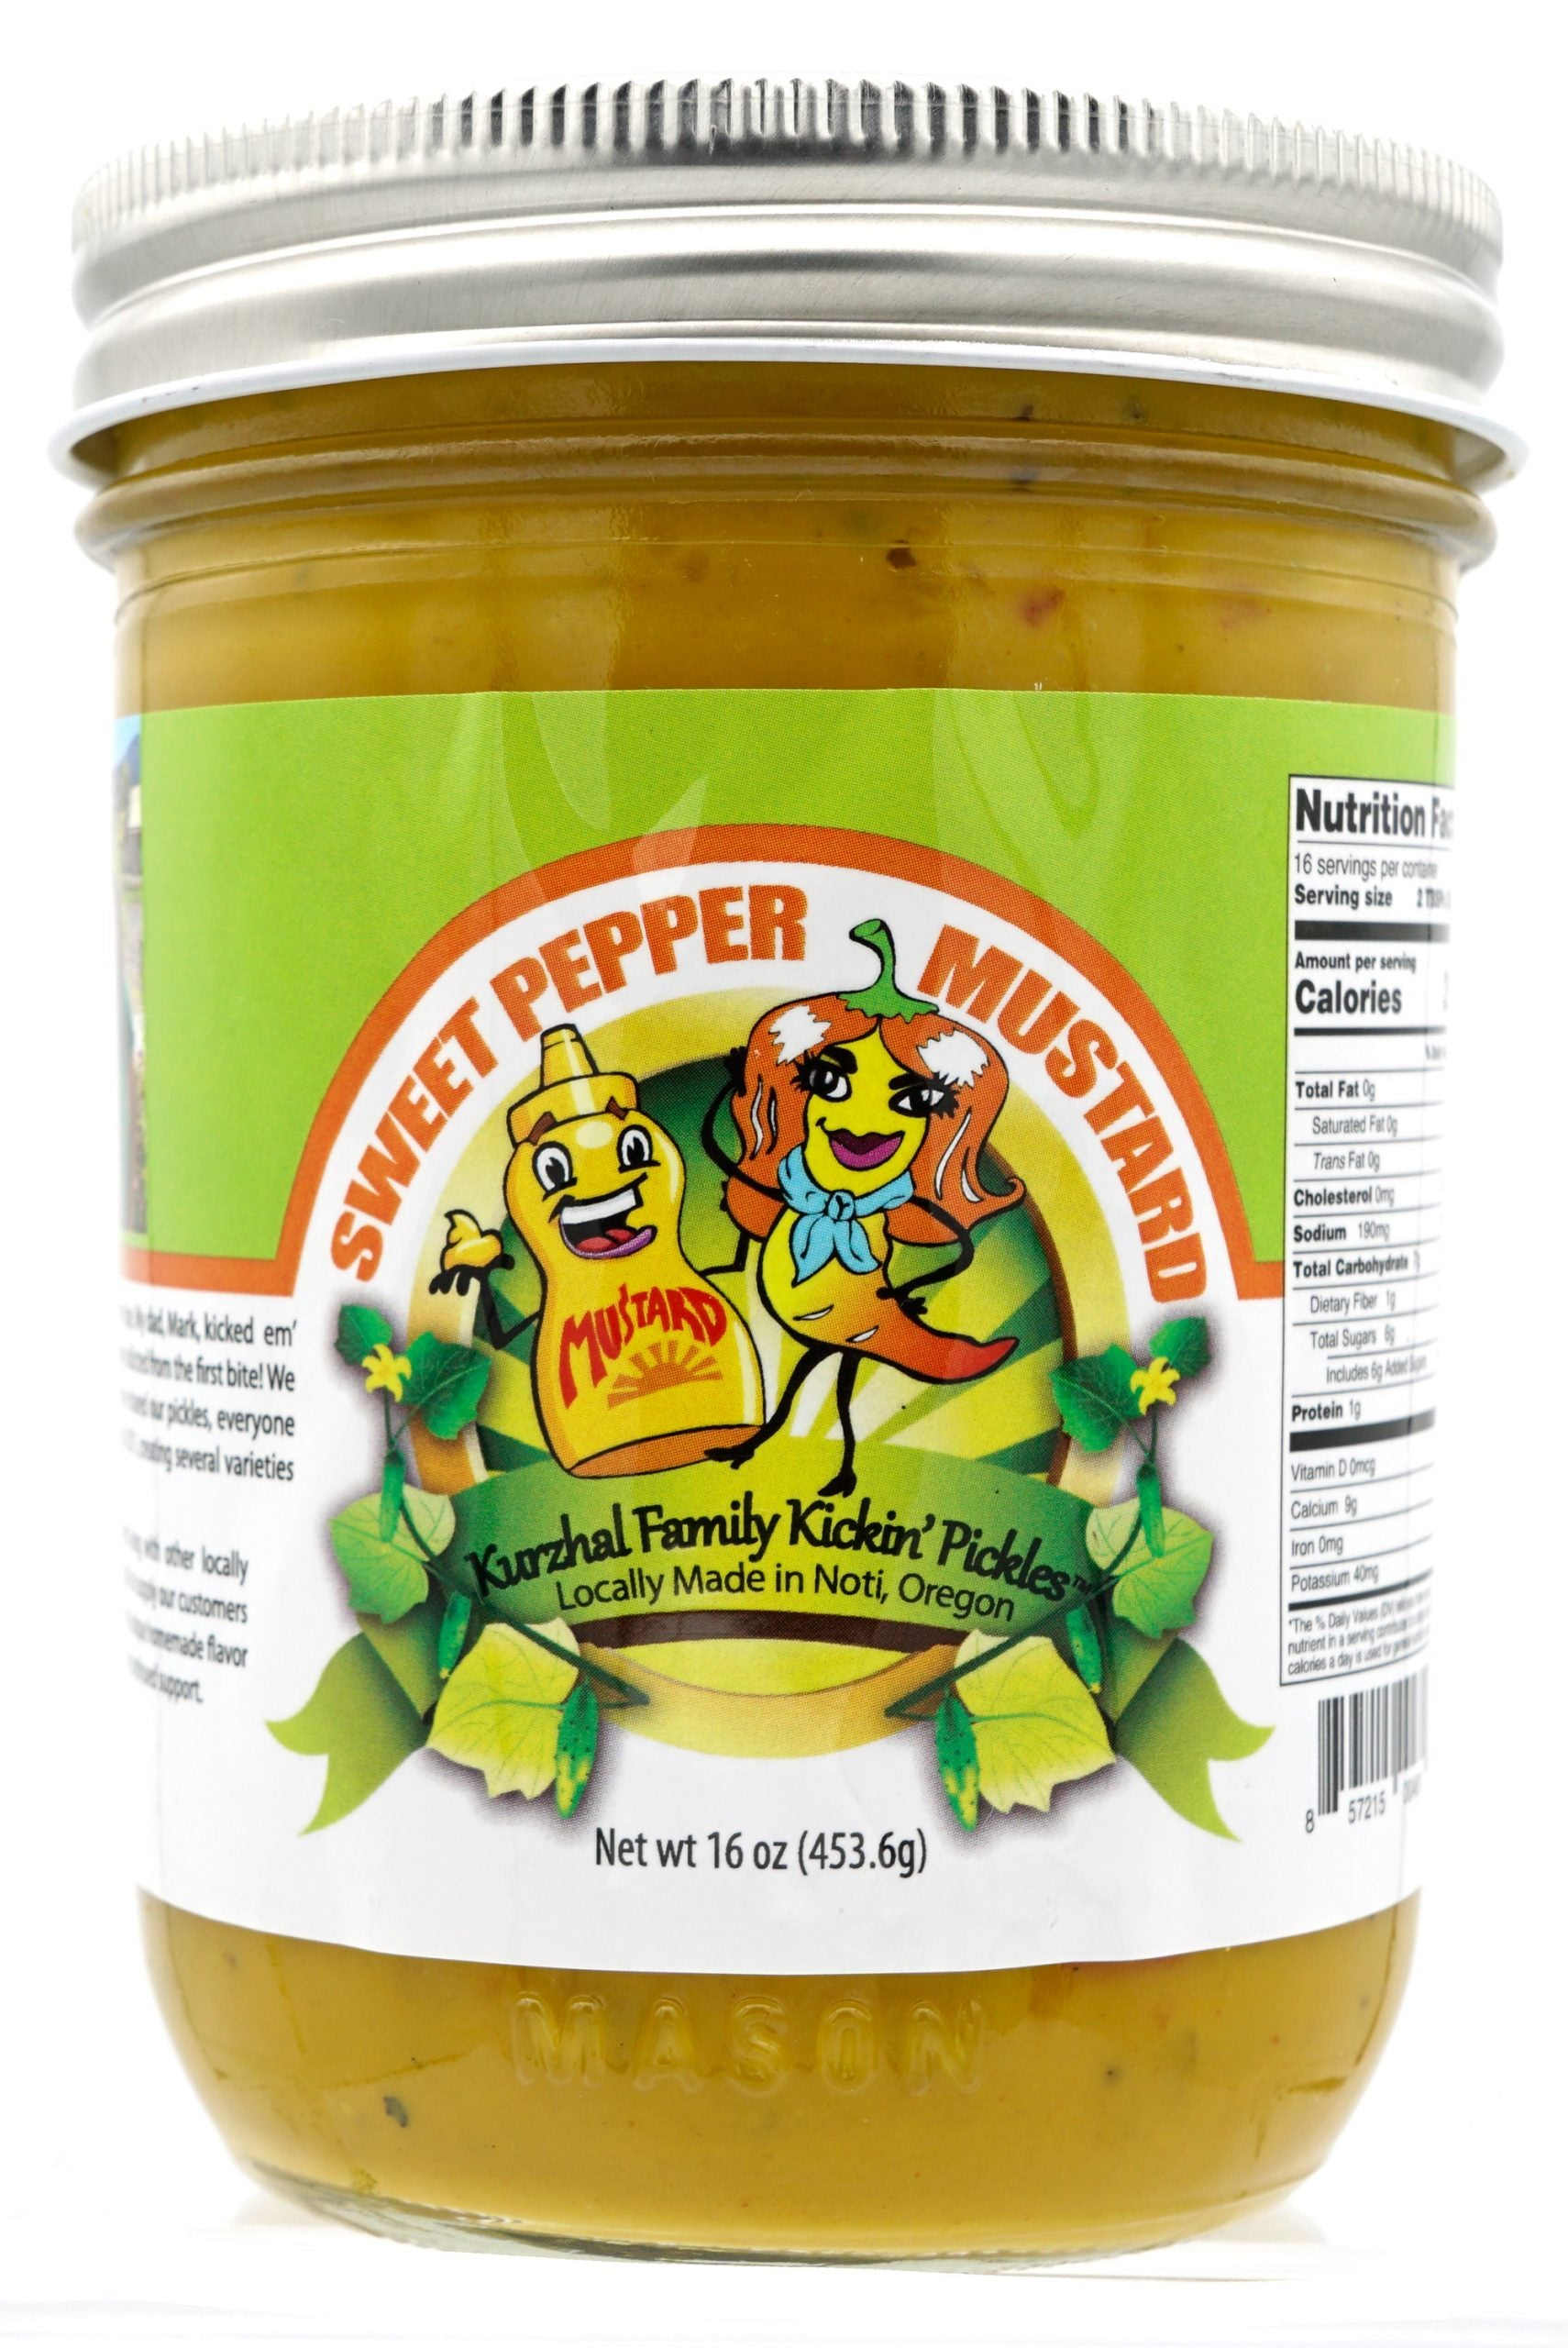 Sweet Pepper Mustard